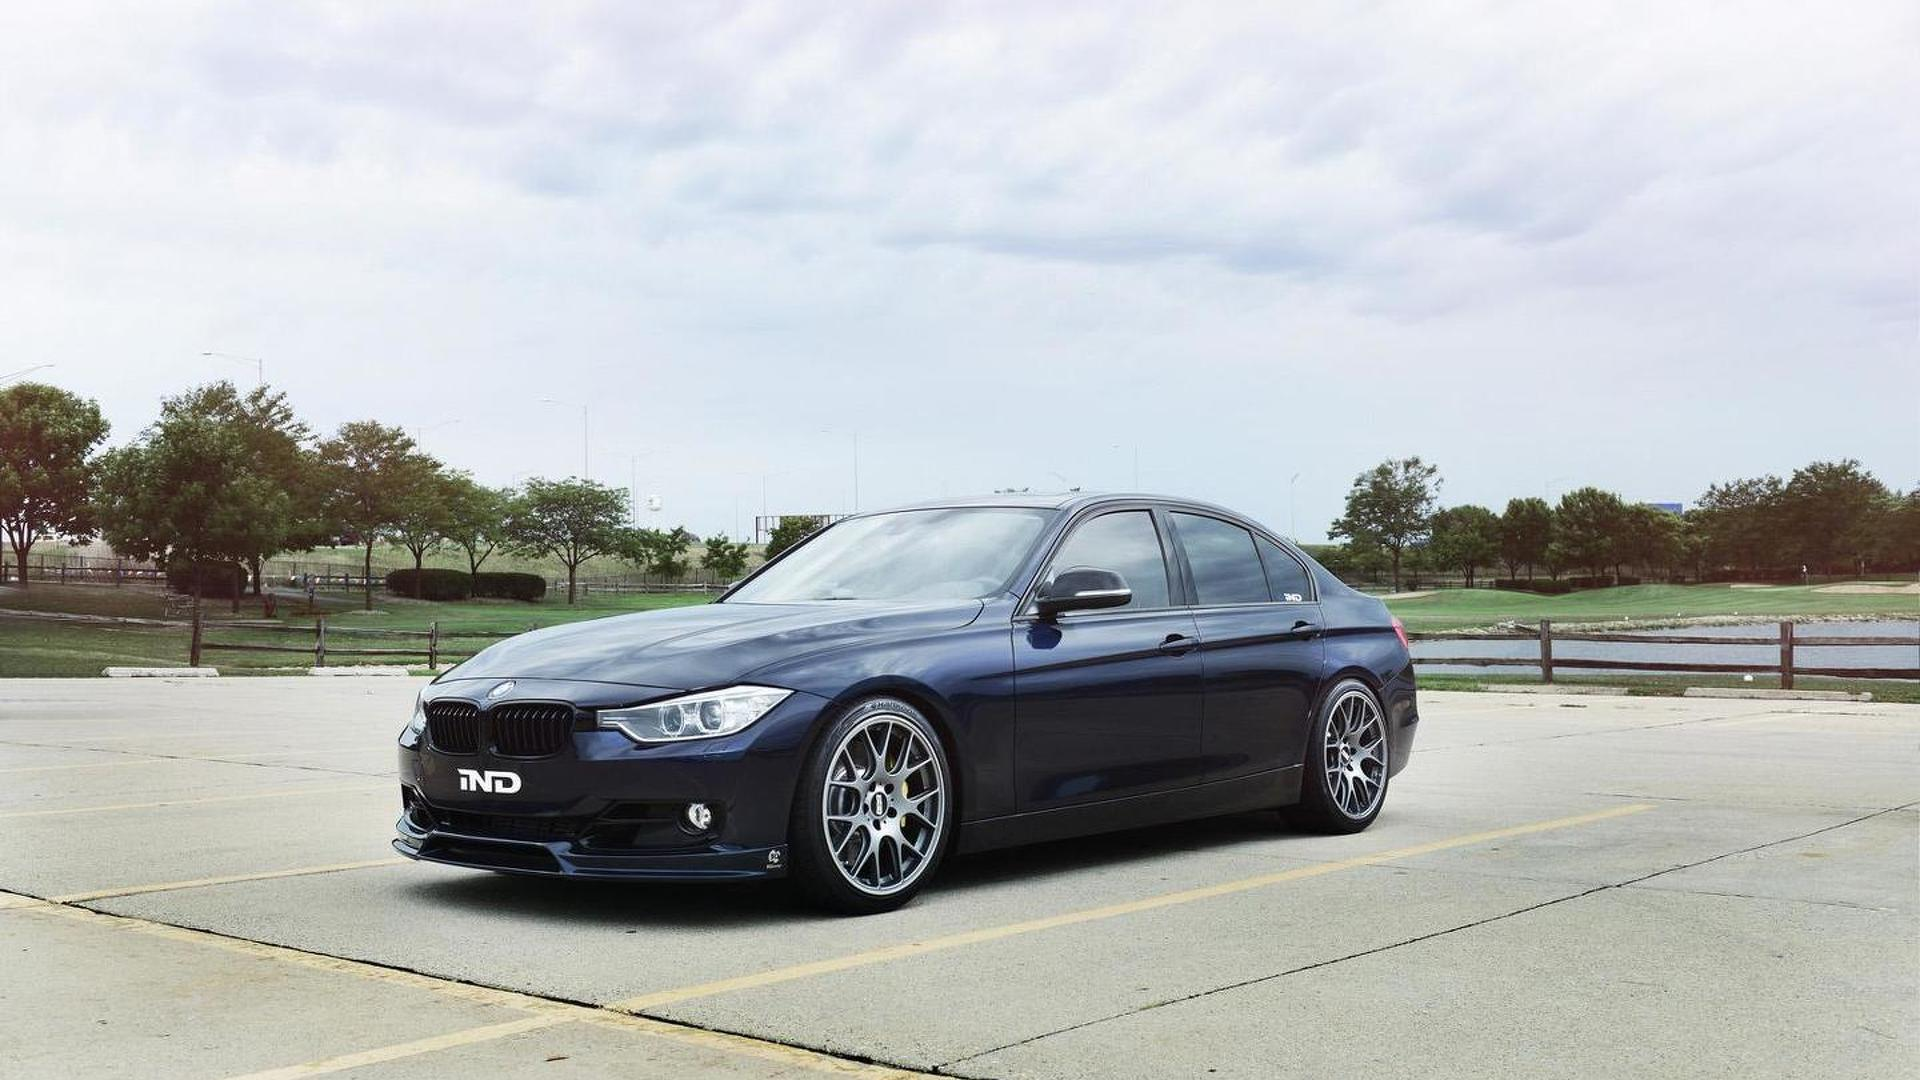 D Design And IND Join Forces For Custom BMW Series F - Bmw 3 series f30